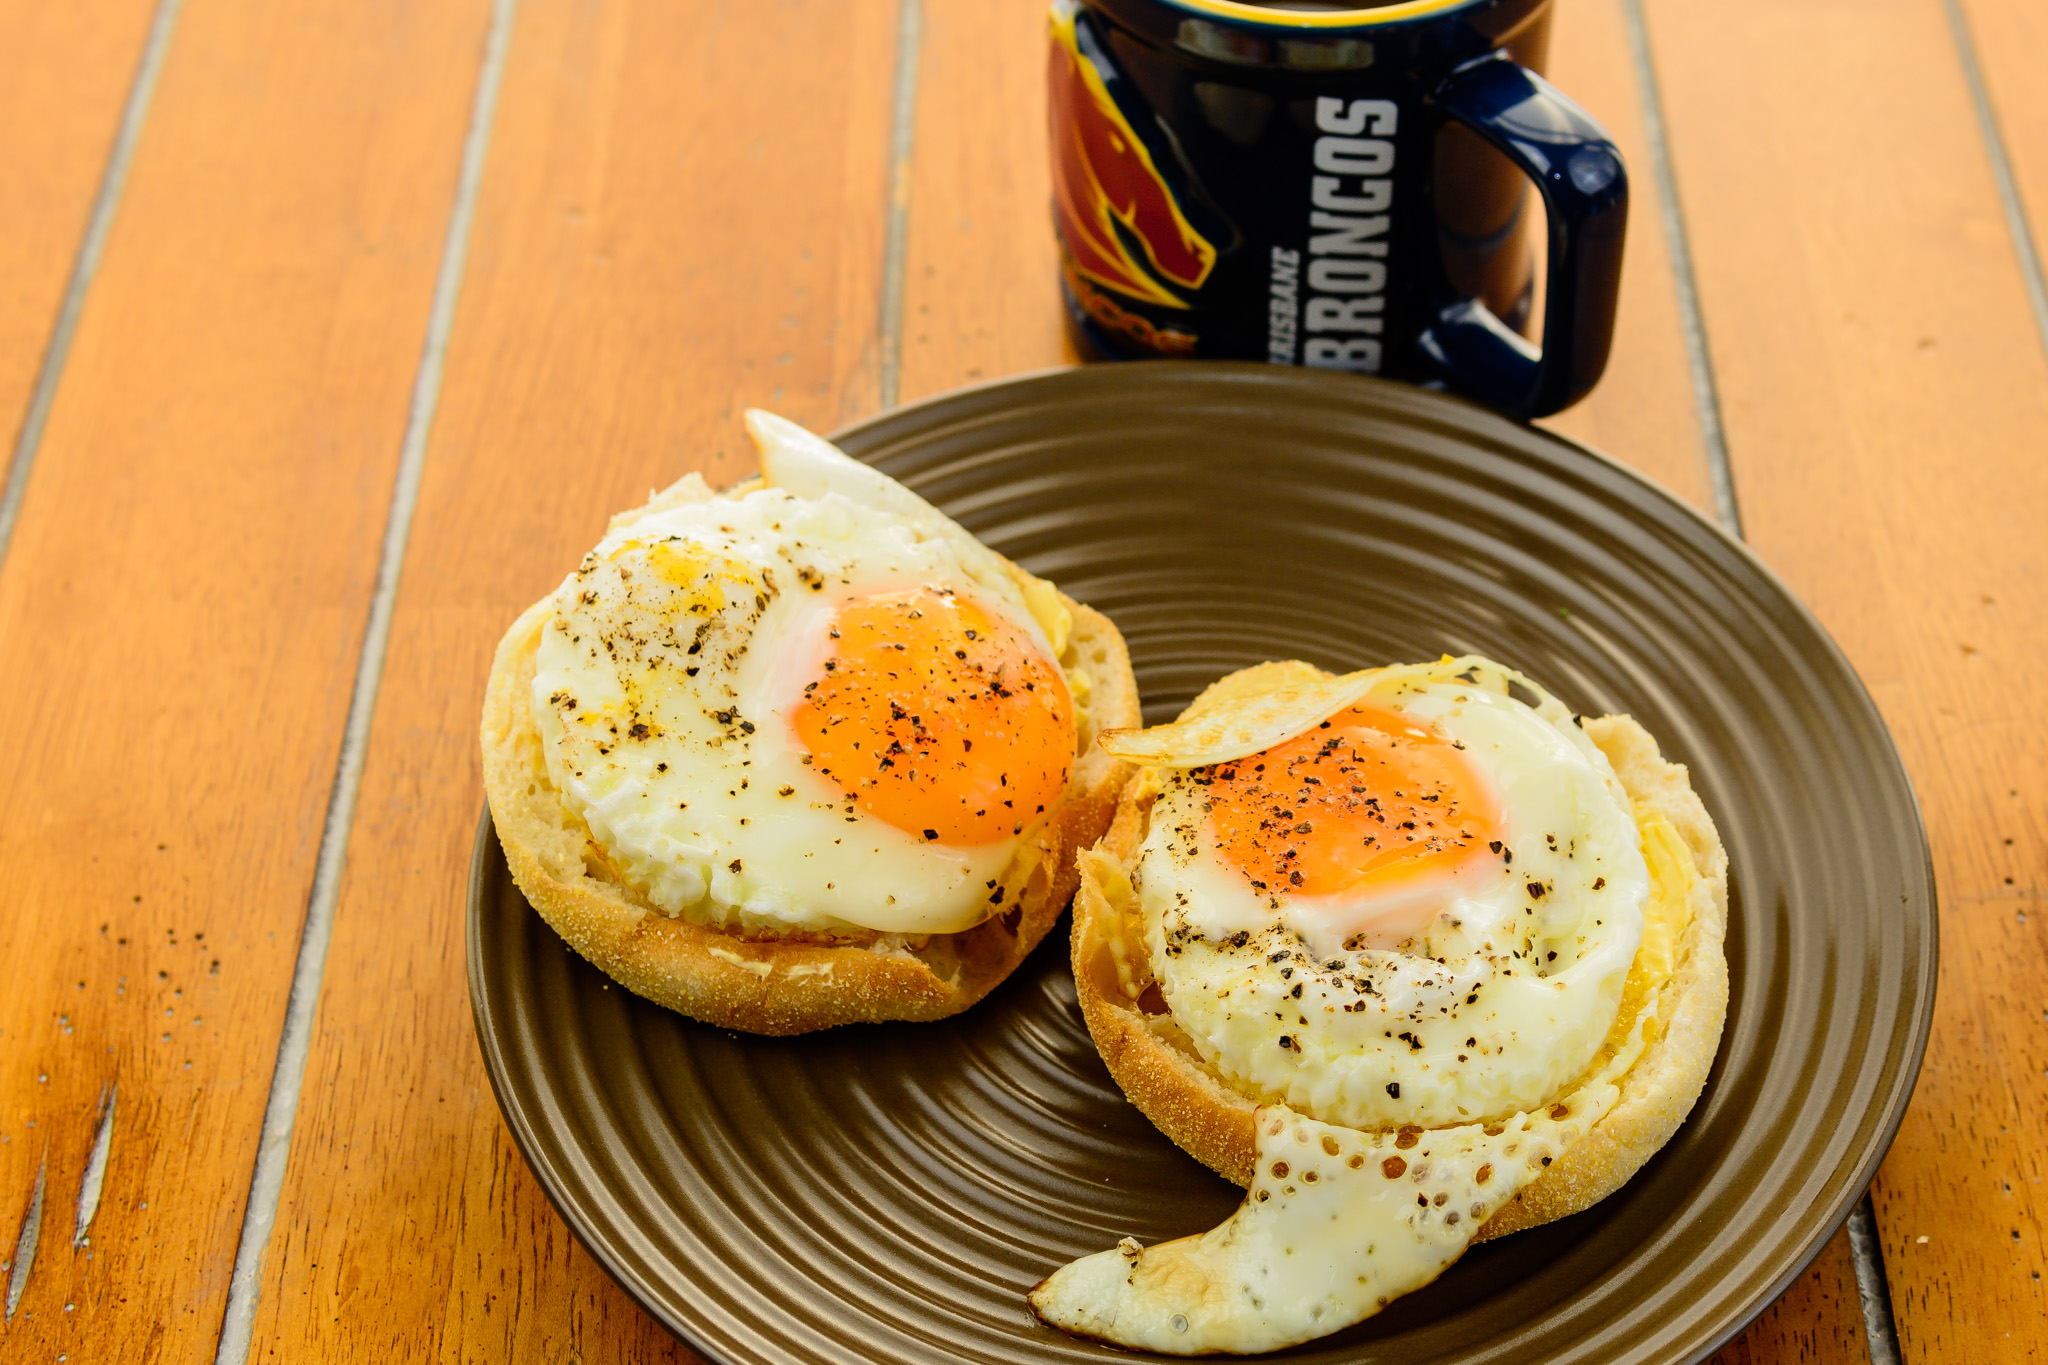 Sunday breakfast. Fried eggs on English muffin.